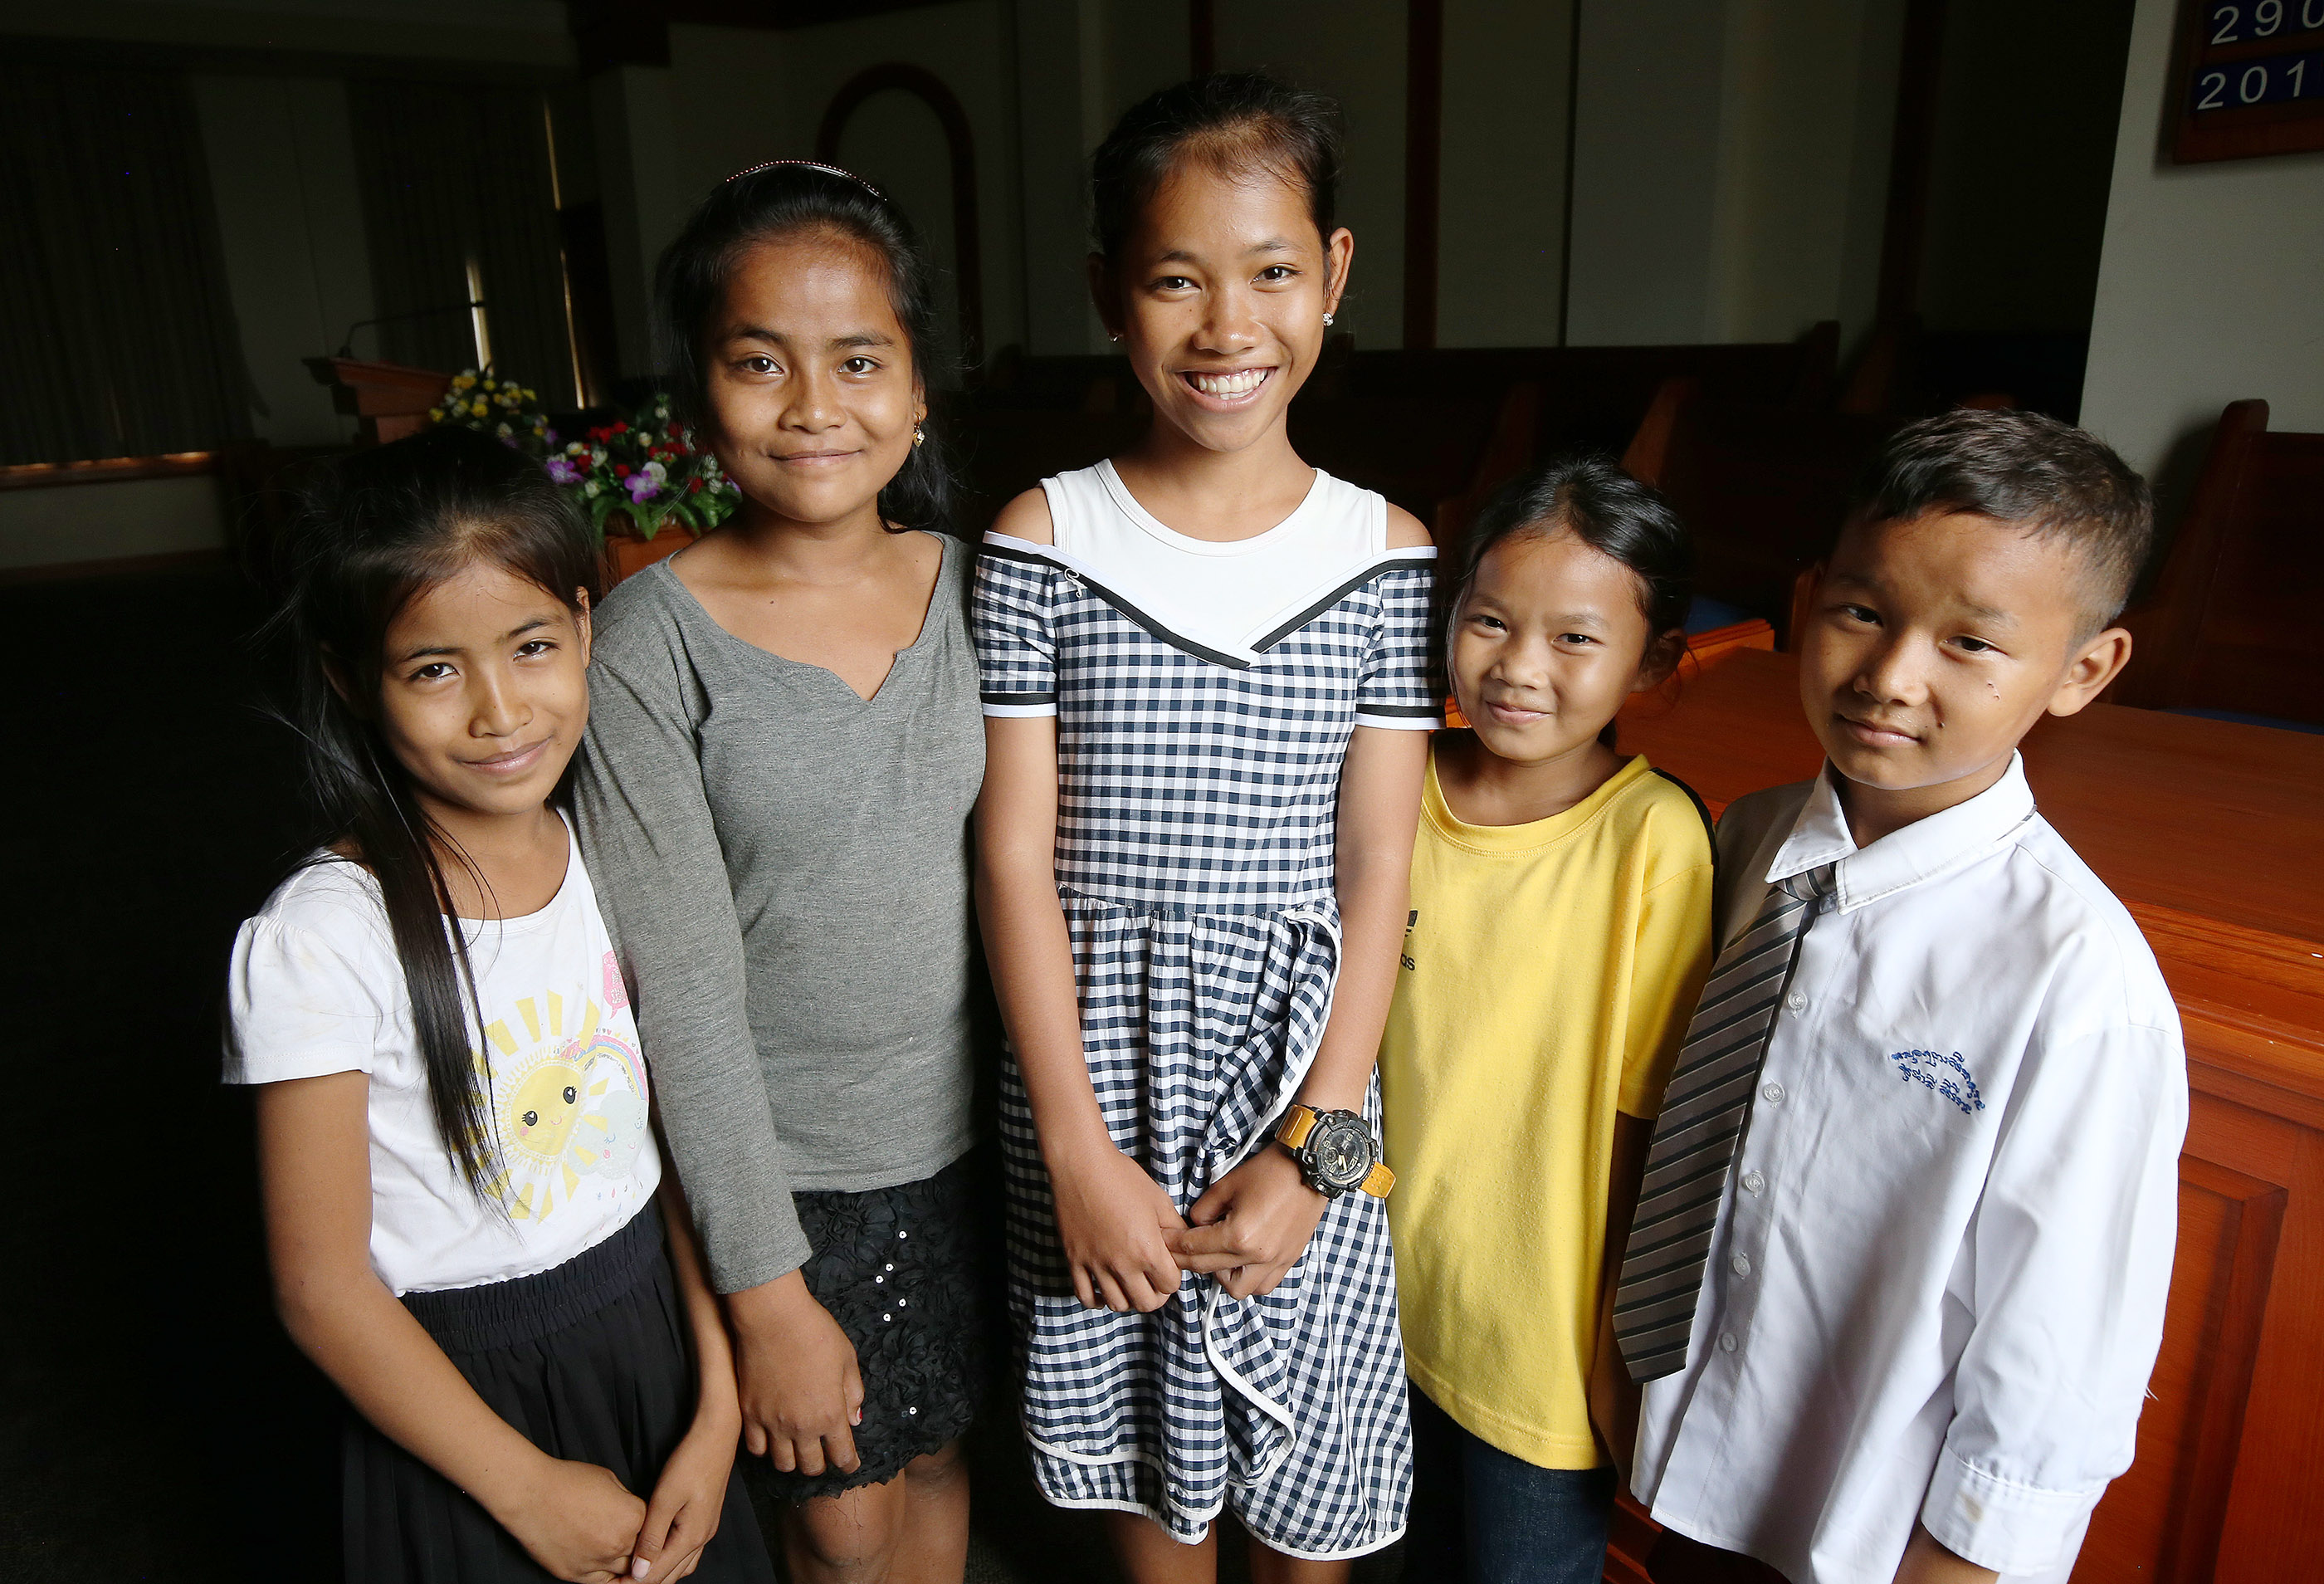 Kampong Thom Branch Primary children pose in the chapel in Cambodia on April 28, 2018.